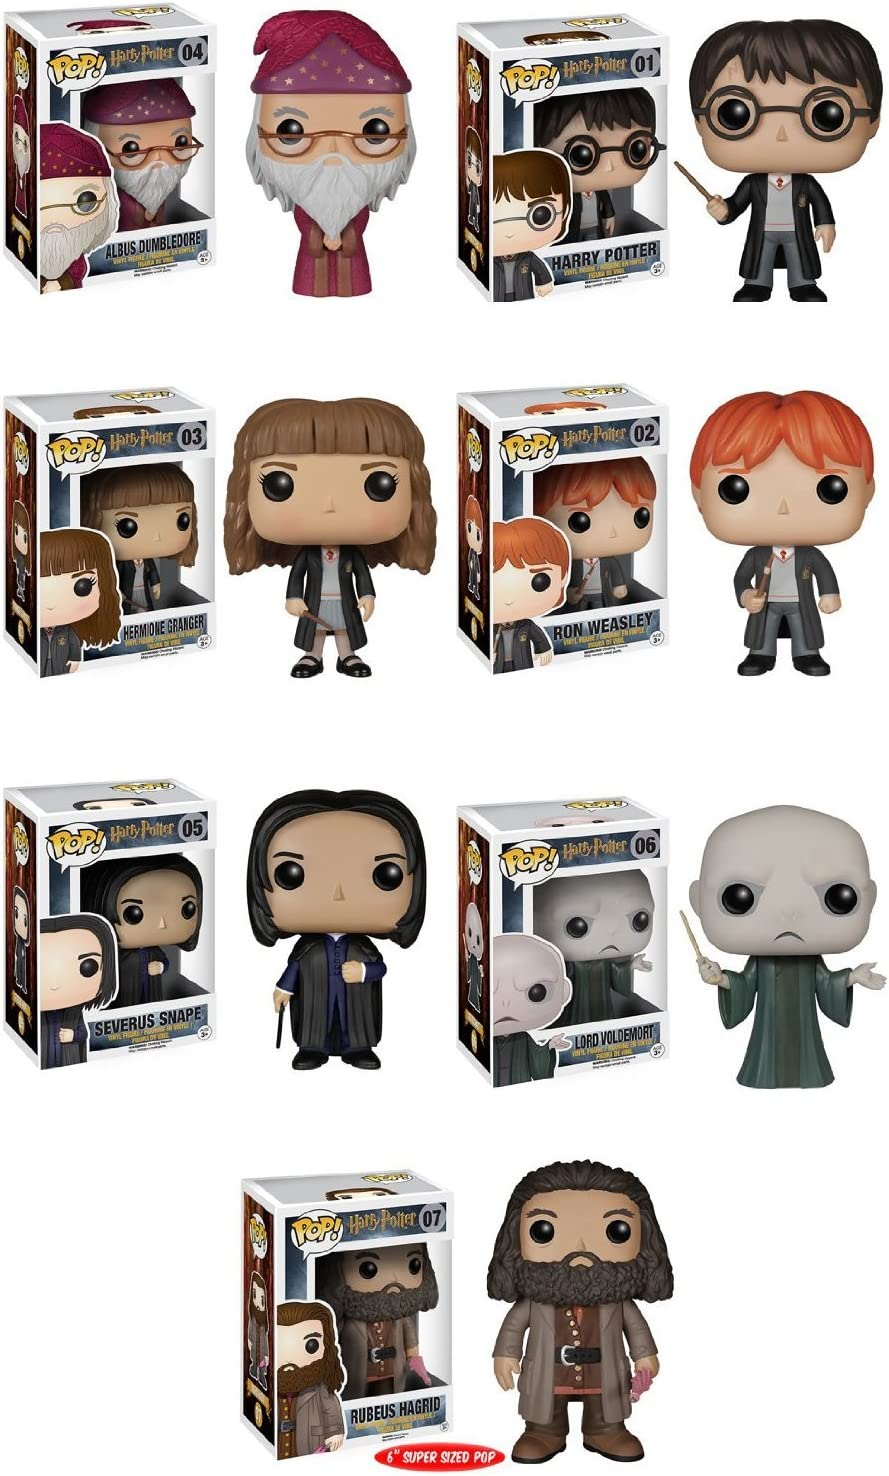 Funko Pops! Complete Set of 7 ~ Harry Potter Voldemort Albus Dumbledore Hermione Granger Ron Weasley Severus Snape and 6 Rubeus Hagrid by